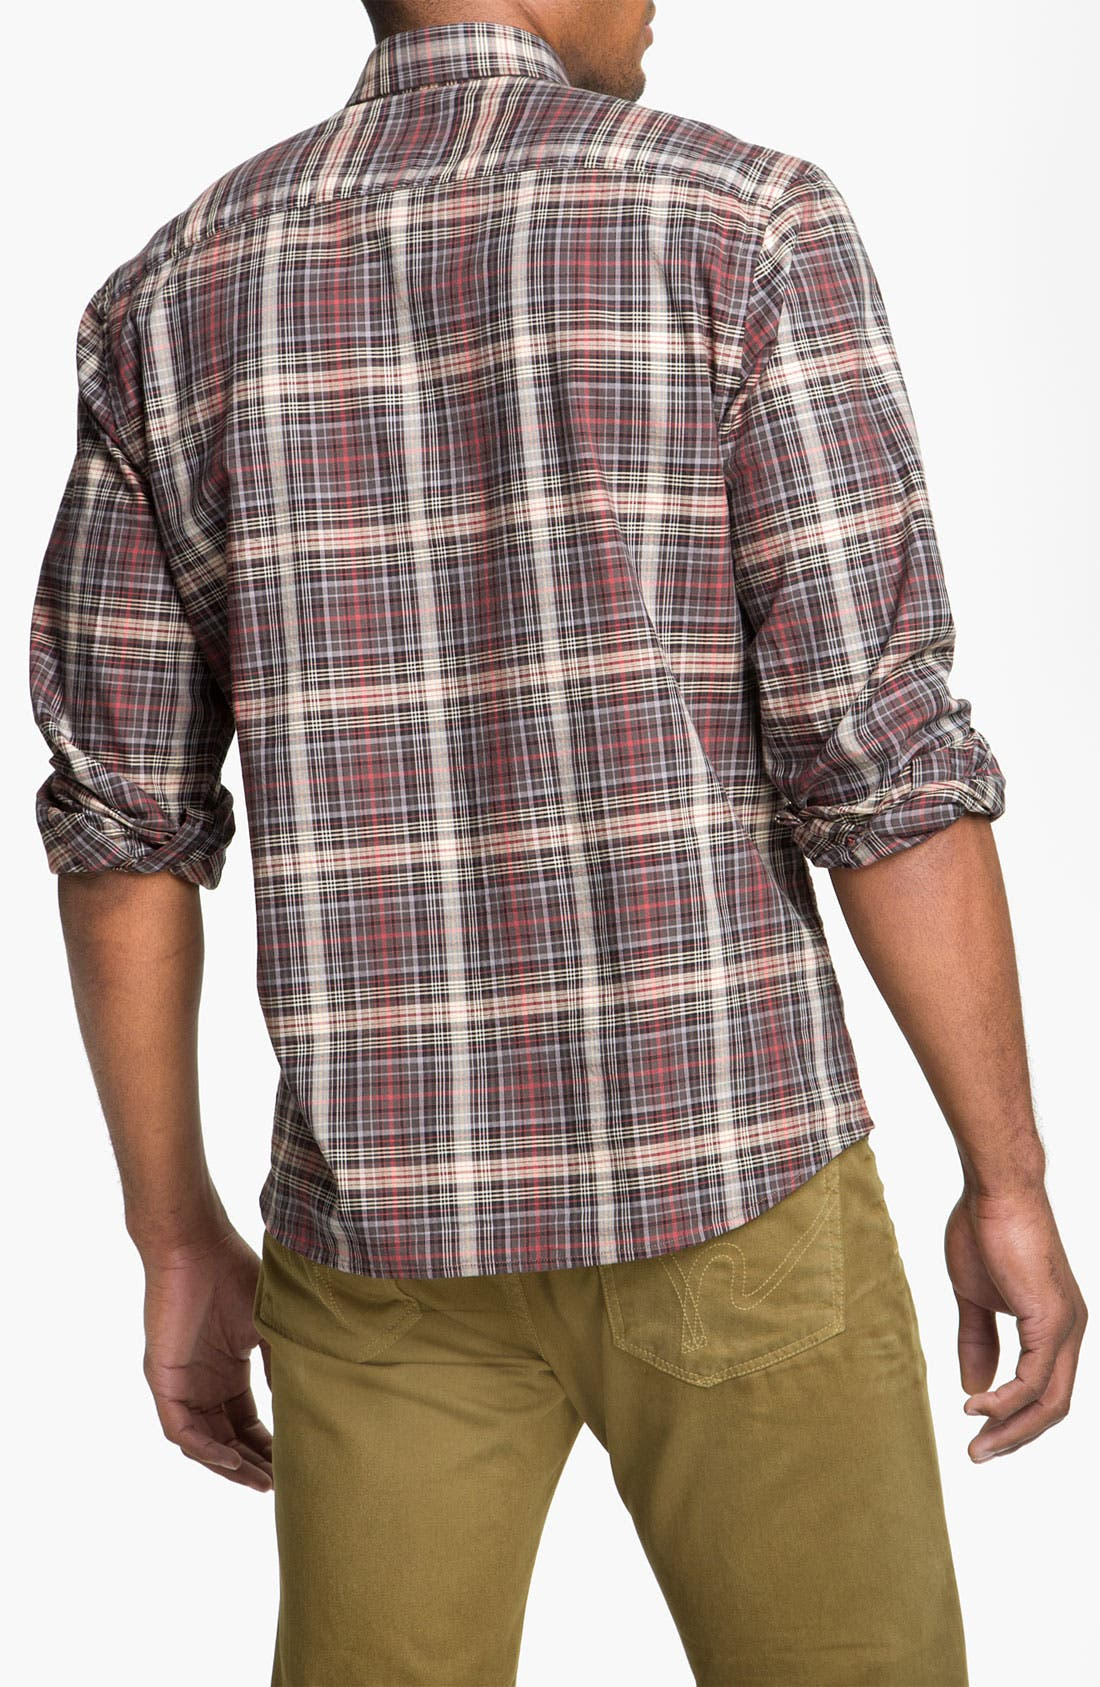 Alternate Image 2  - Cutter & Buck 'McCrea' Plaid Woven Shirt (Big & Tall)